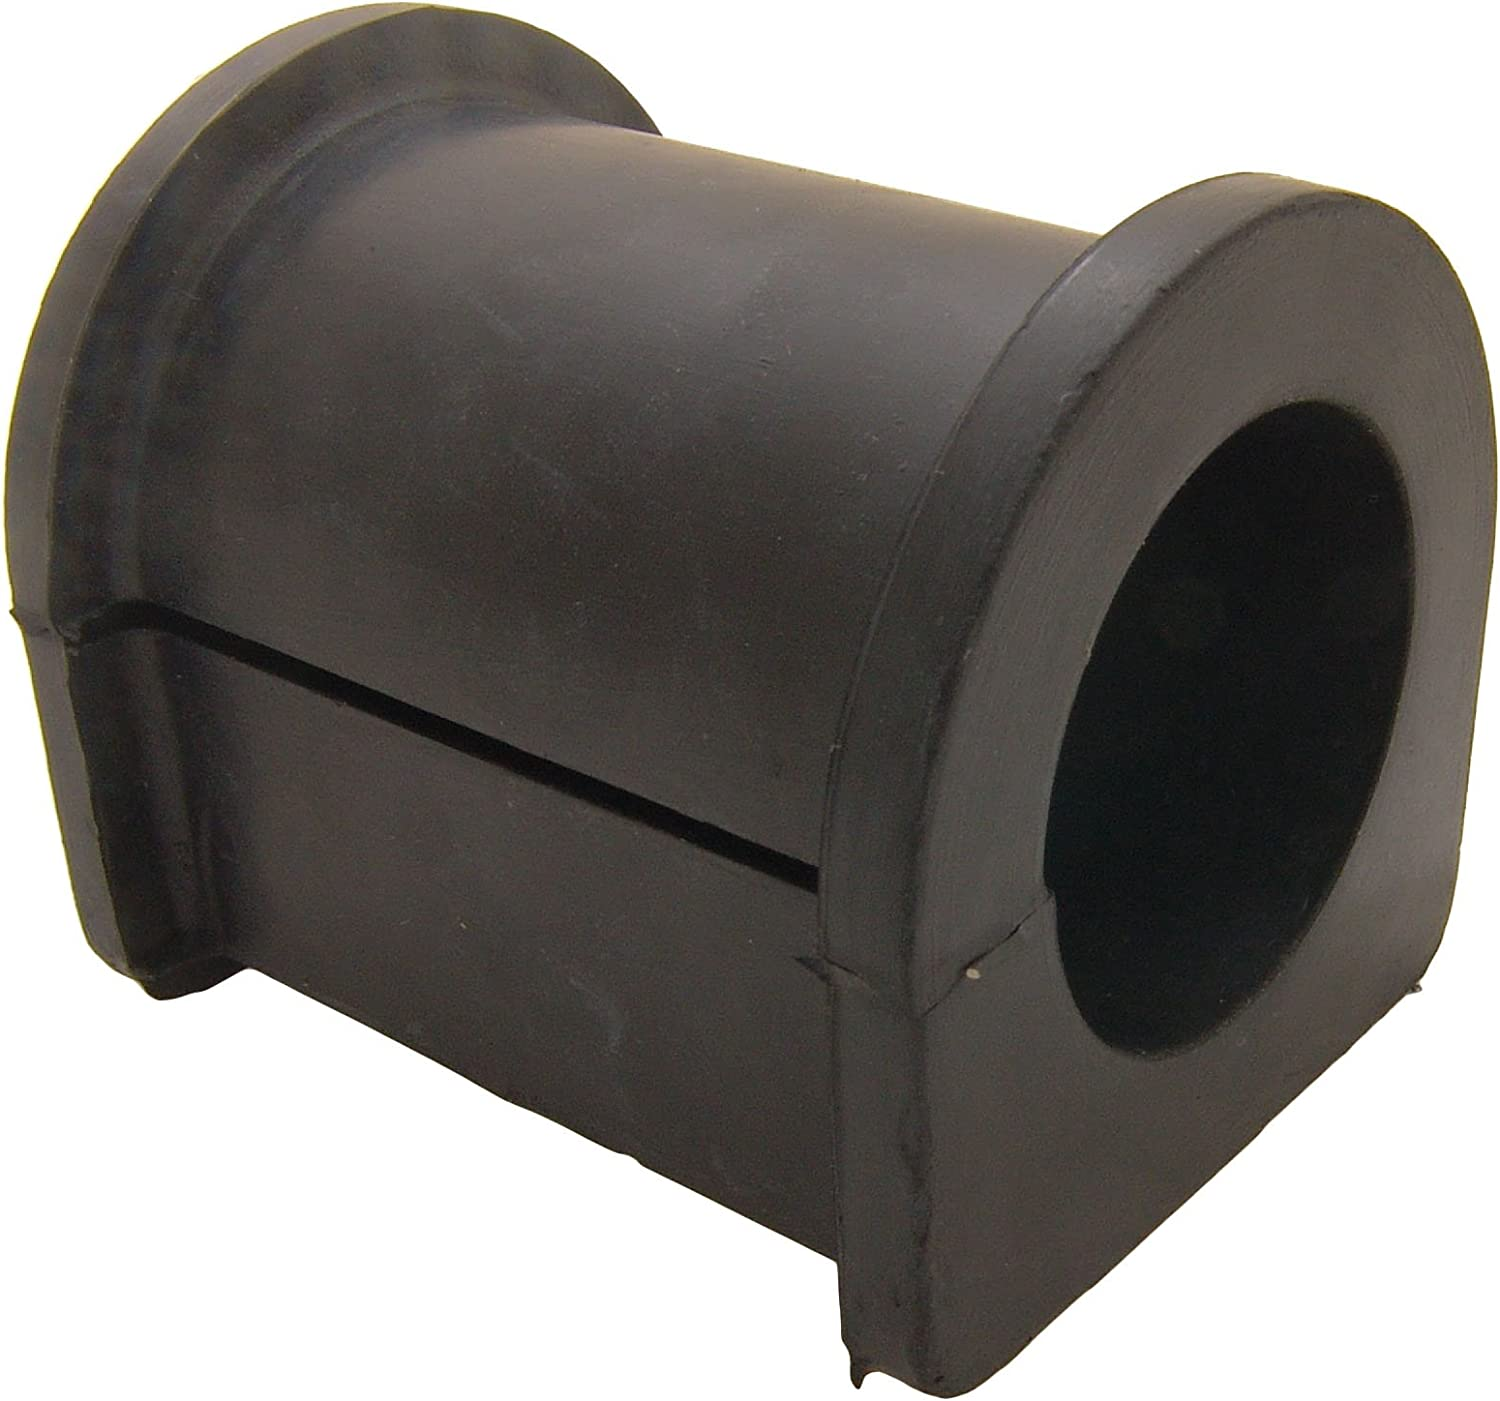 Outstanding Rbx101181 - Stabilizer Bushing excellence Rover Land Febest For